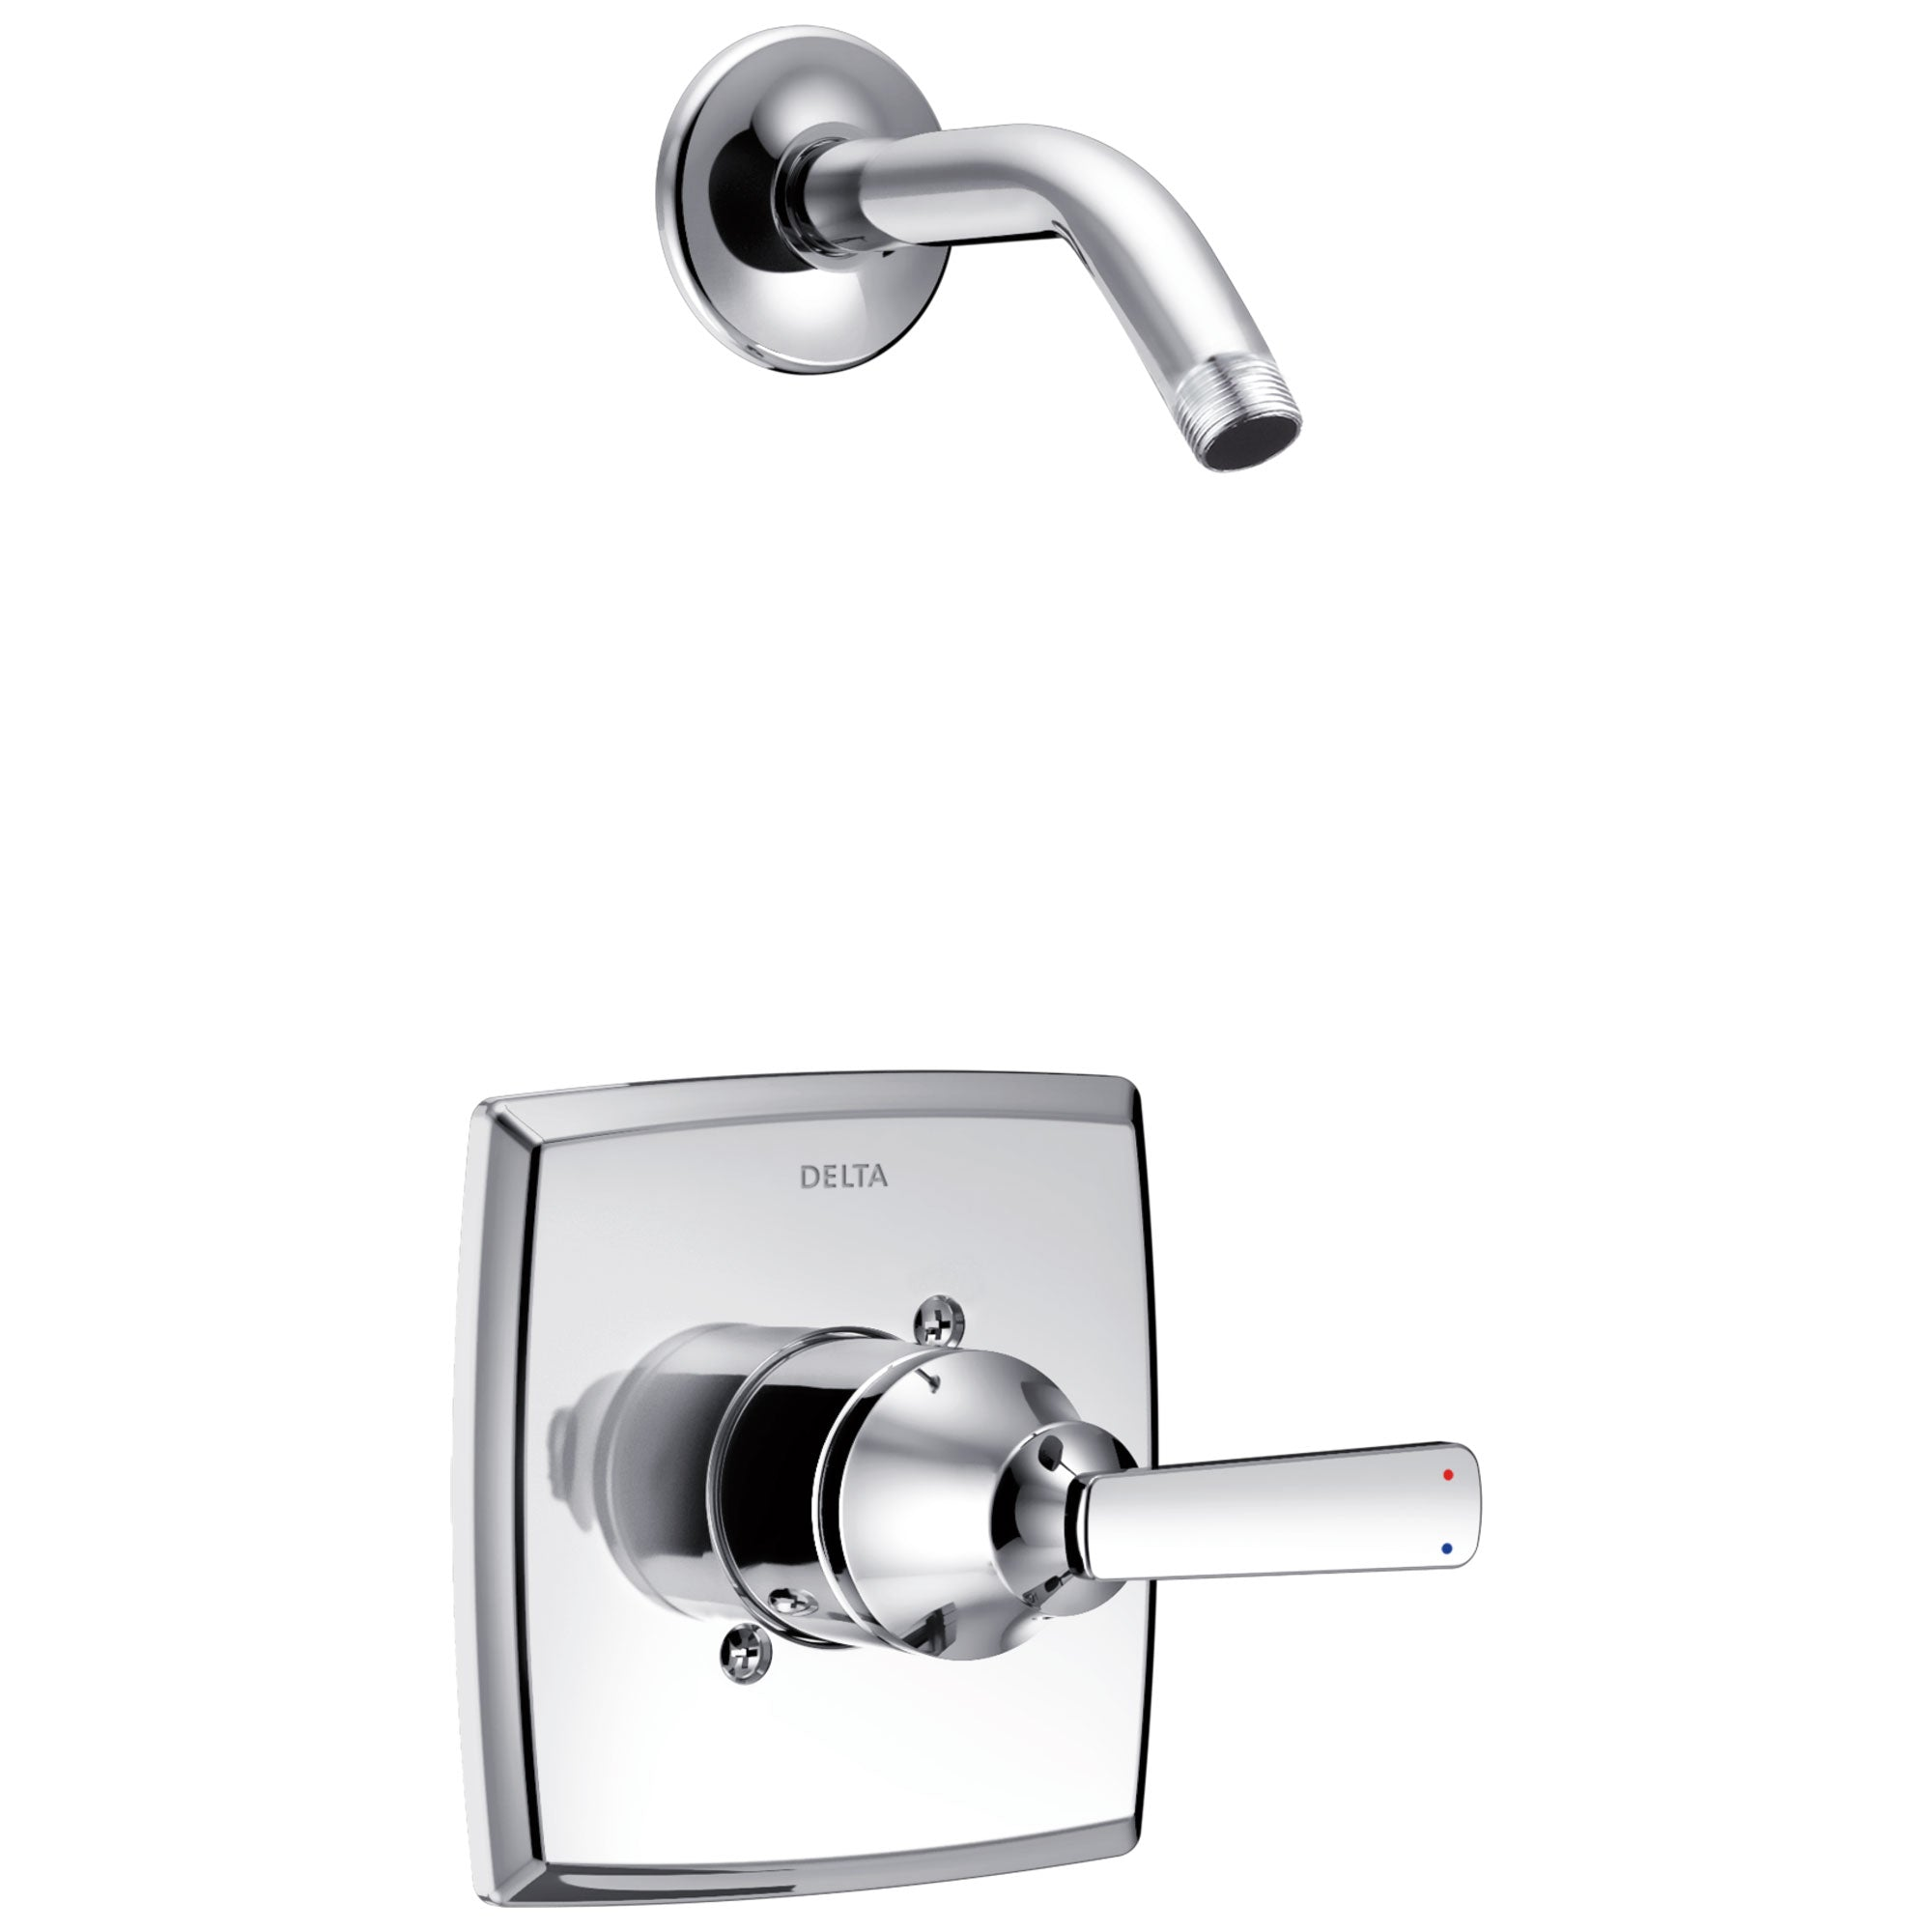 Delta Ashlyn Collection Chrome Monitor 14 Modern Single Lever Shower only Faucet Trim Kit - Less Showerhead Includes Rough-in Valve with Stops D2448V